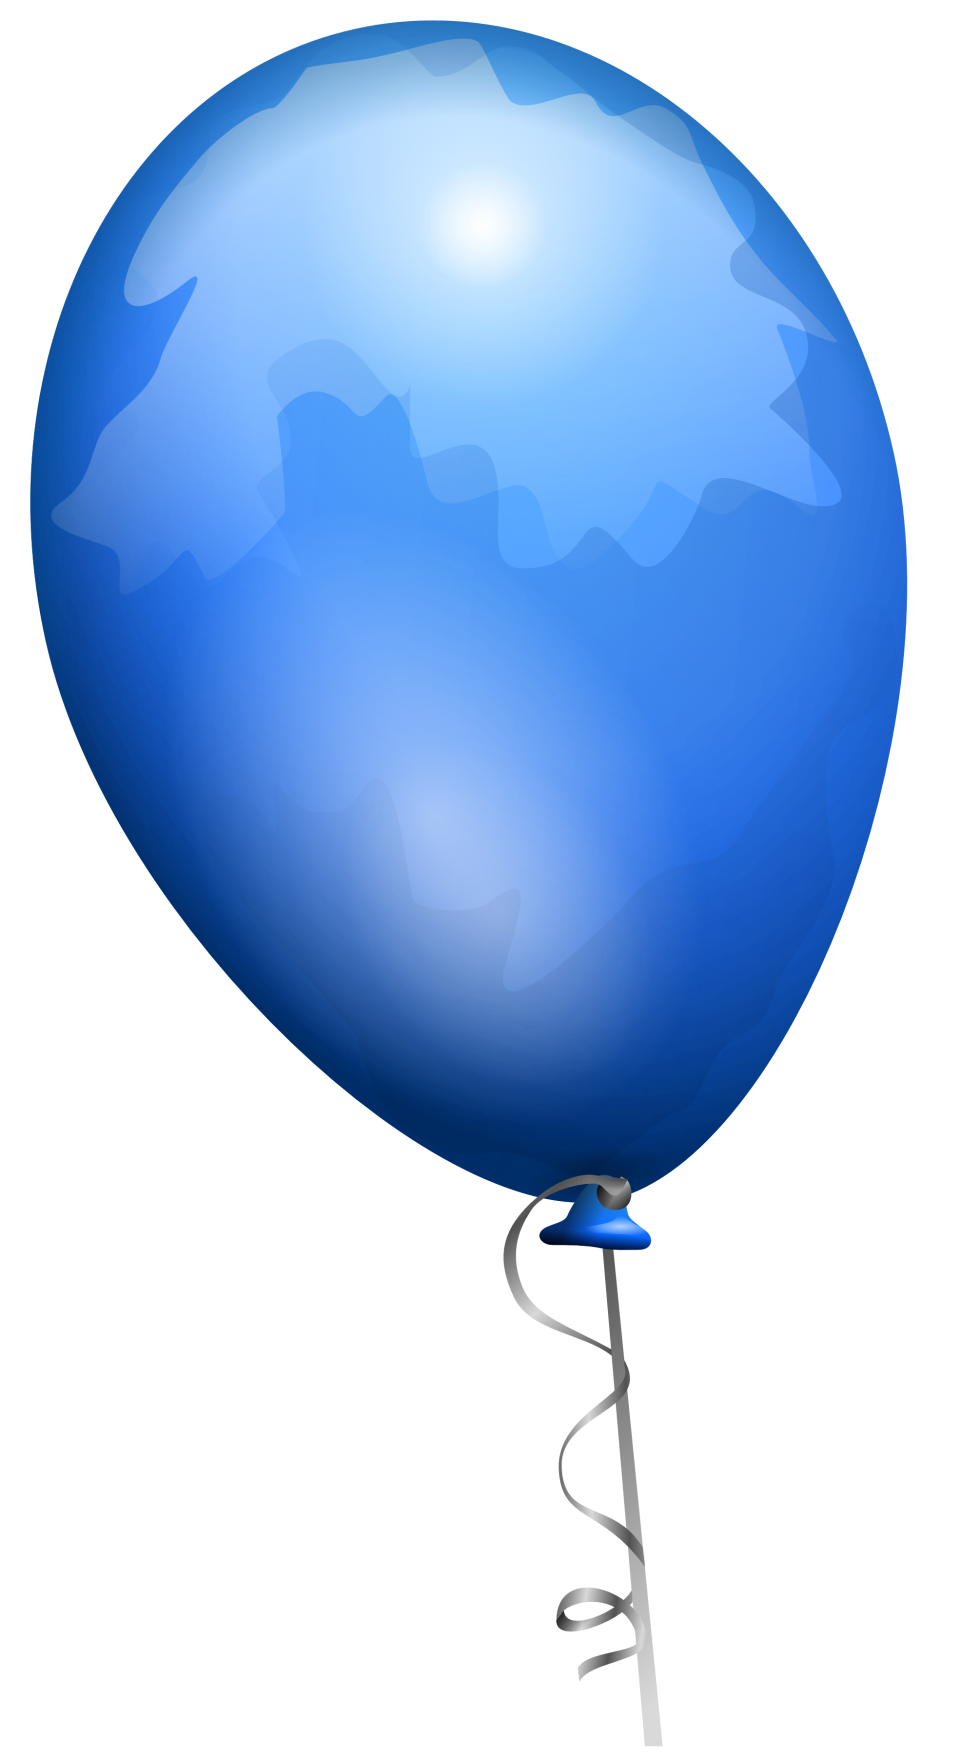 Blue Party Balloon PNG Image